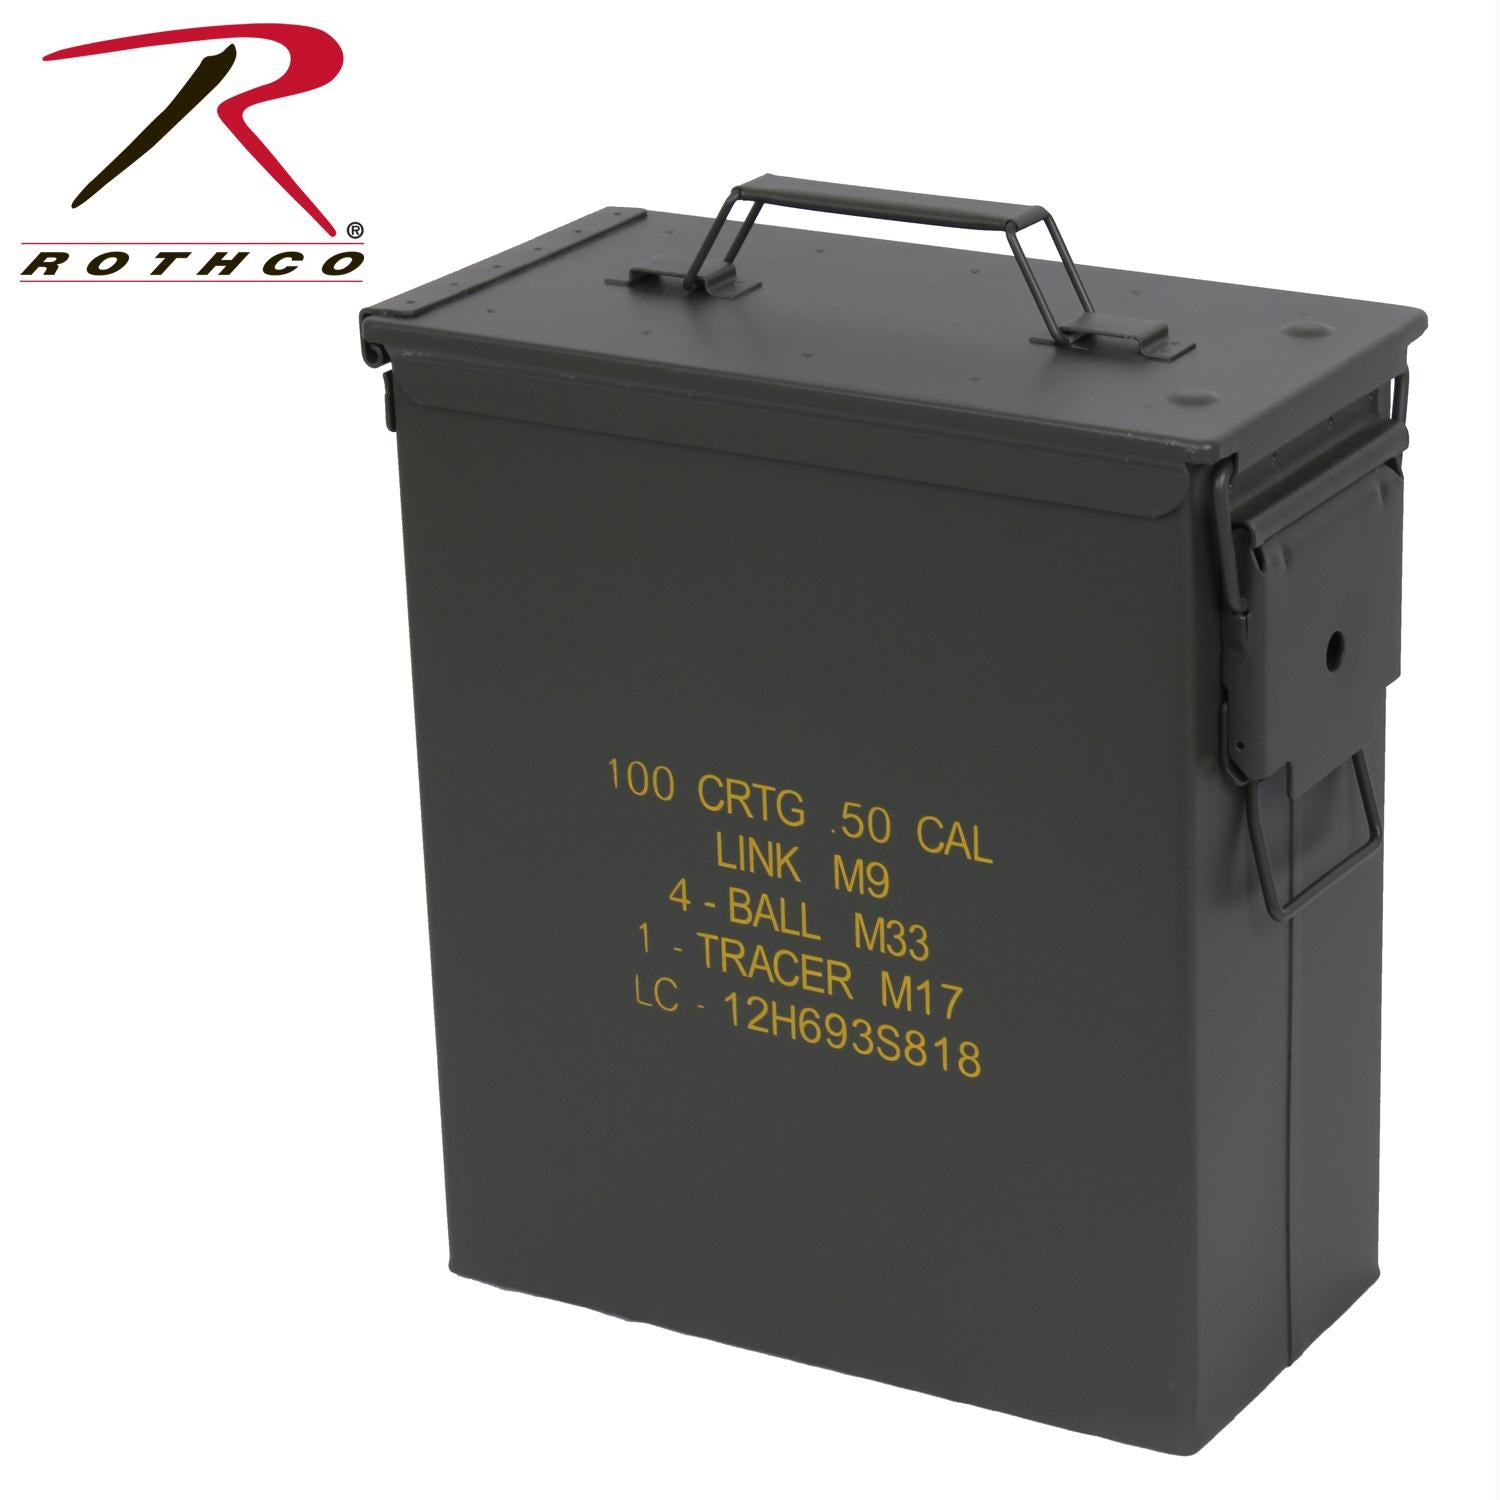 Rothco Mil Spec Ammo Cans - .50 Caliber Tall